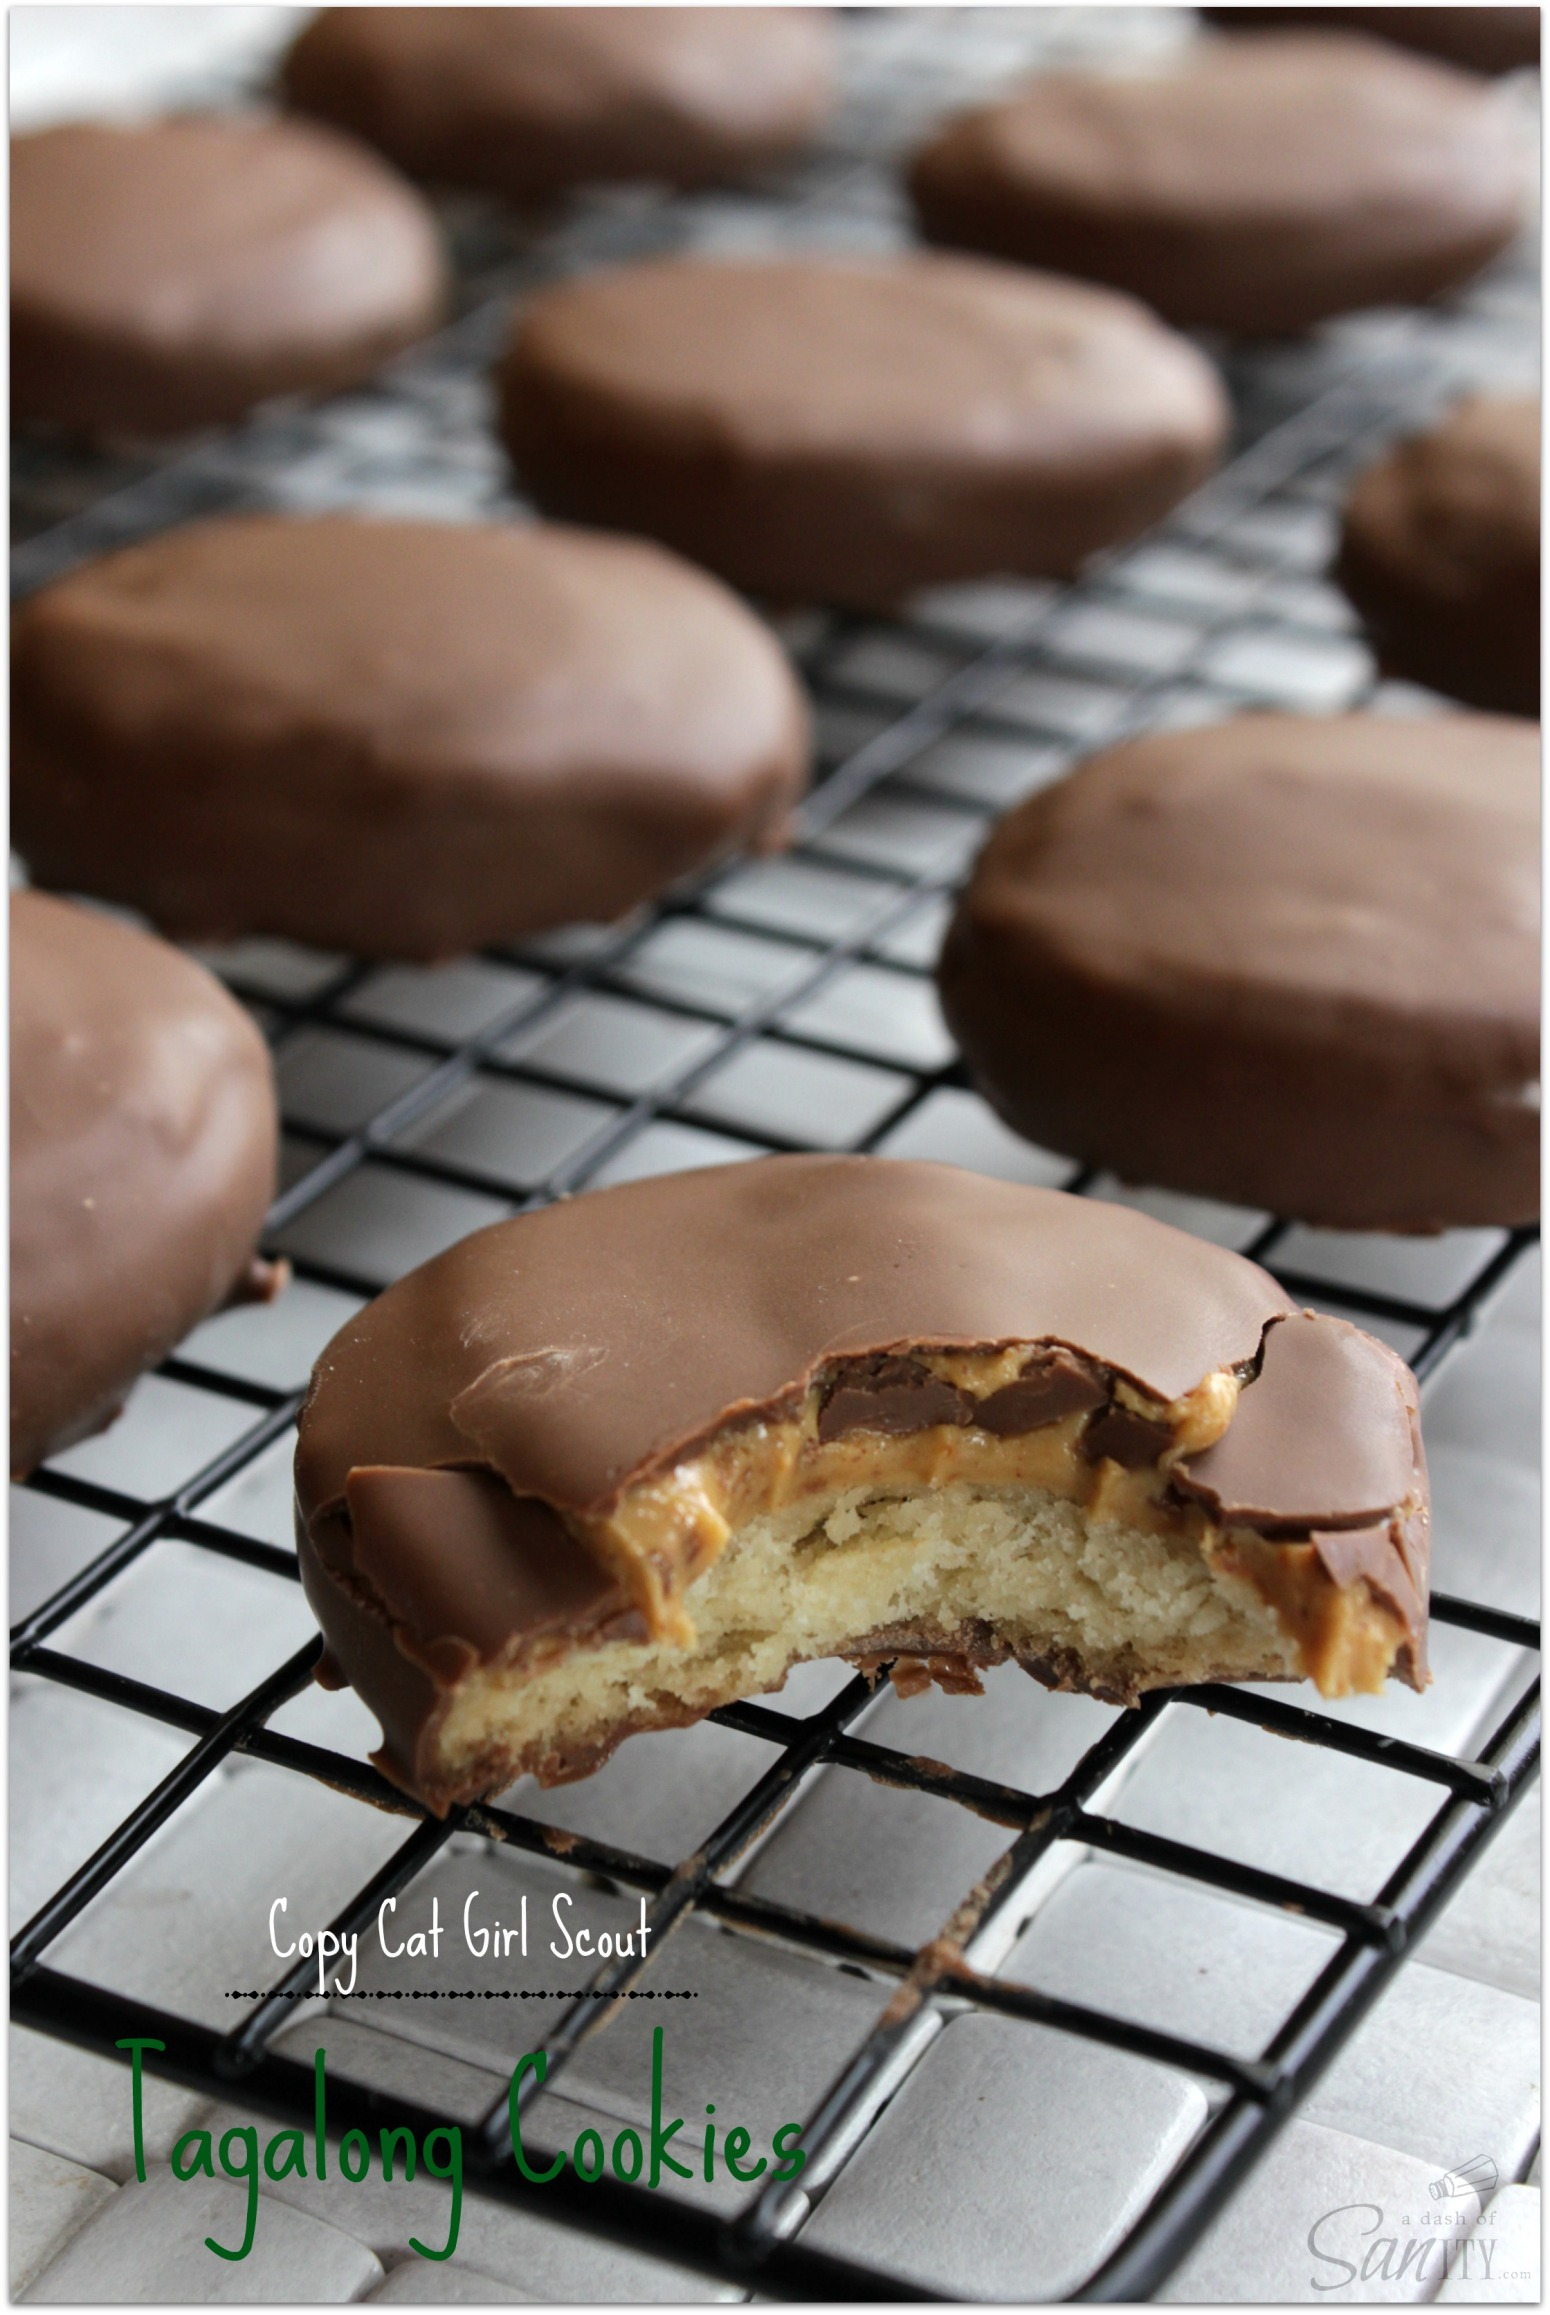 Copycat Girl Scout Tagalong Cookies Recipe | Just A Pinch Recipes